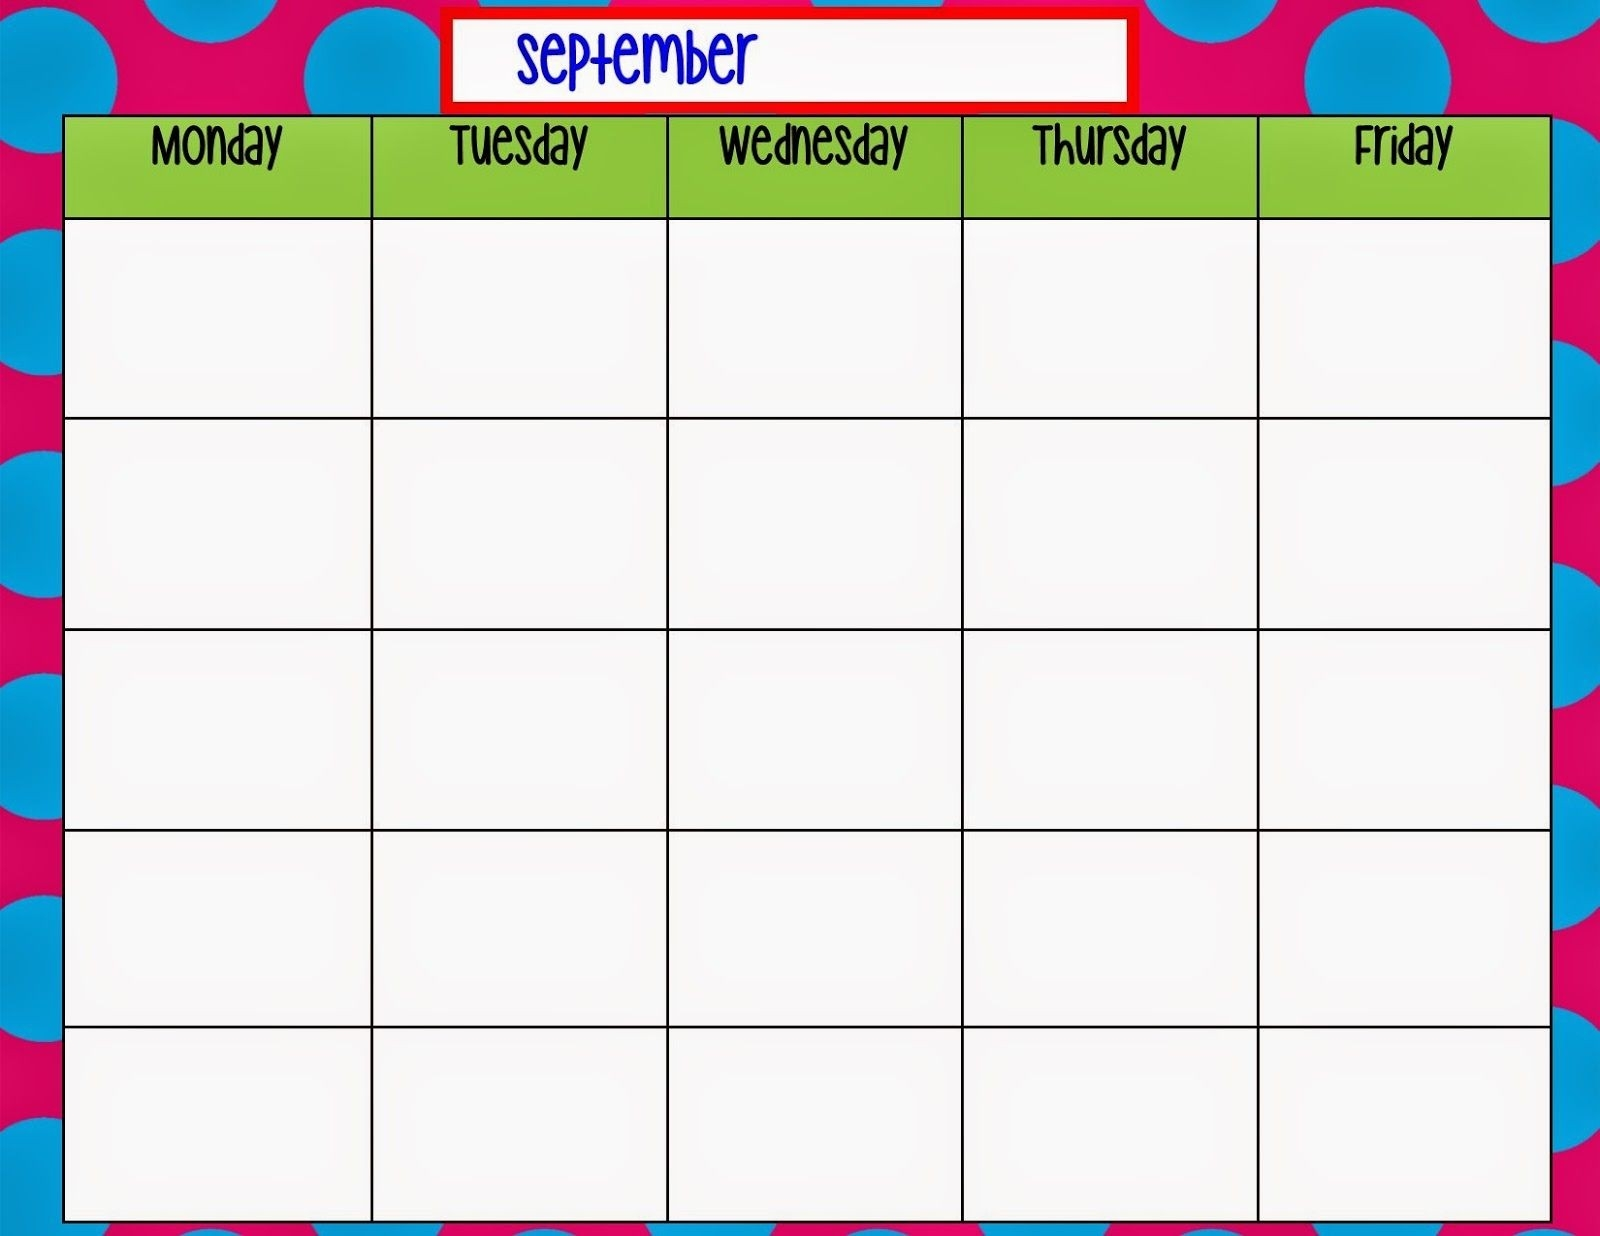 Monday Through Friday Calendar Template | Preschool | Weekly-Weekly Calendar Templates Free Printable Monday-Friday